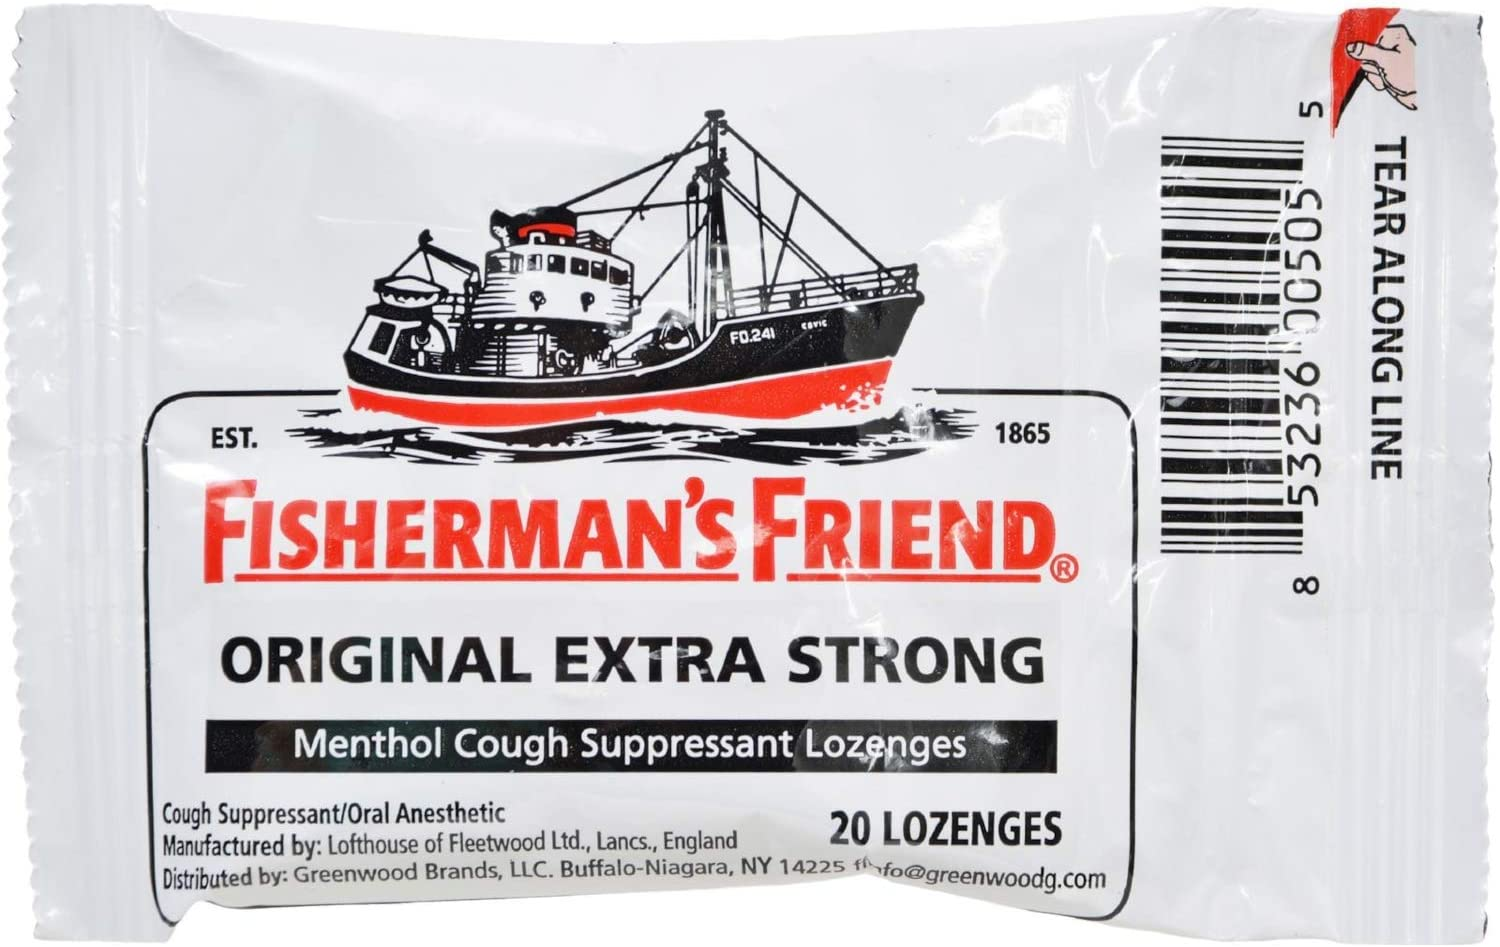 Fisherman's Friend Lozenges Original 25g Fees Limited time for free shipping free of Pack 3